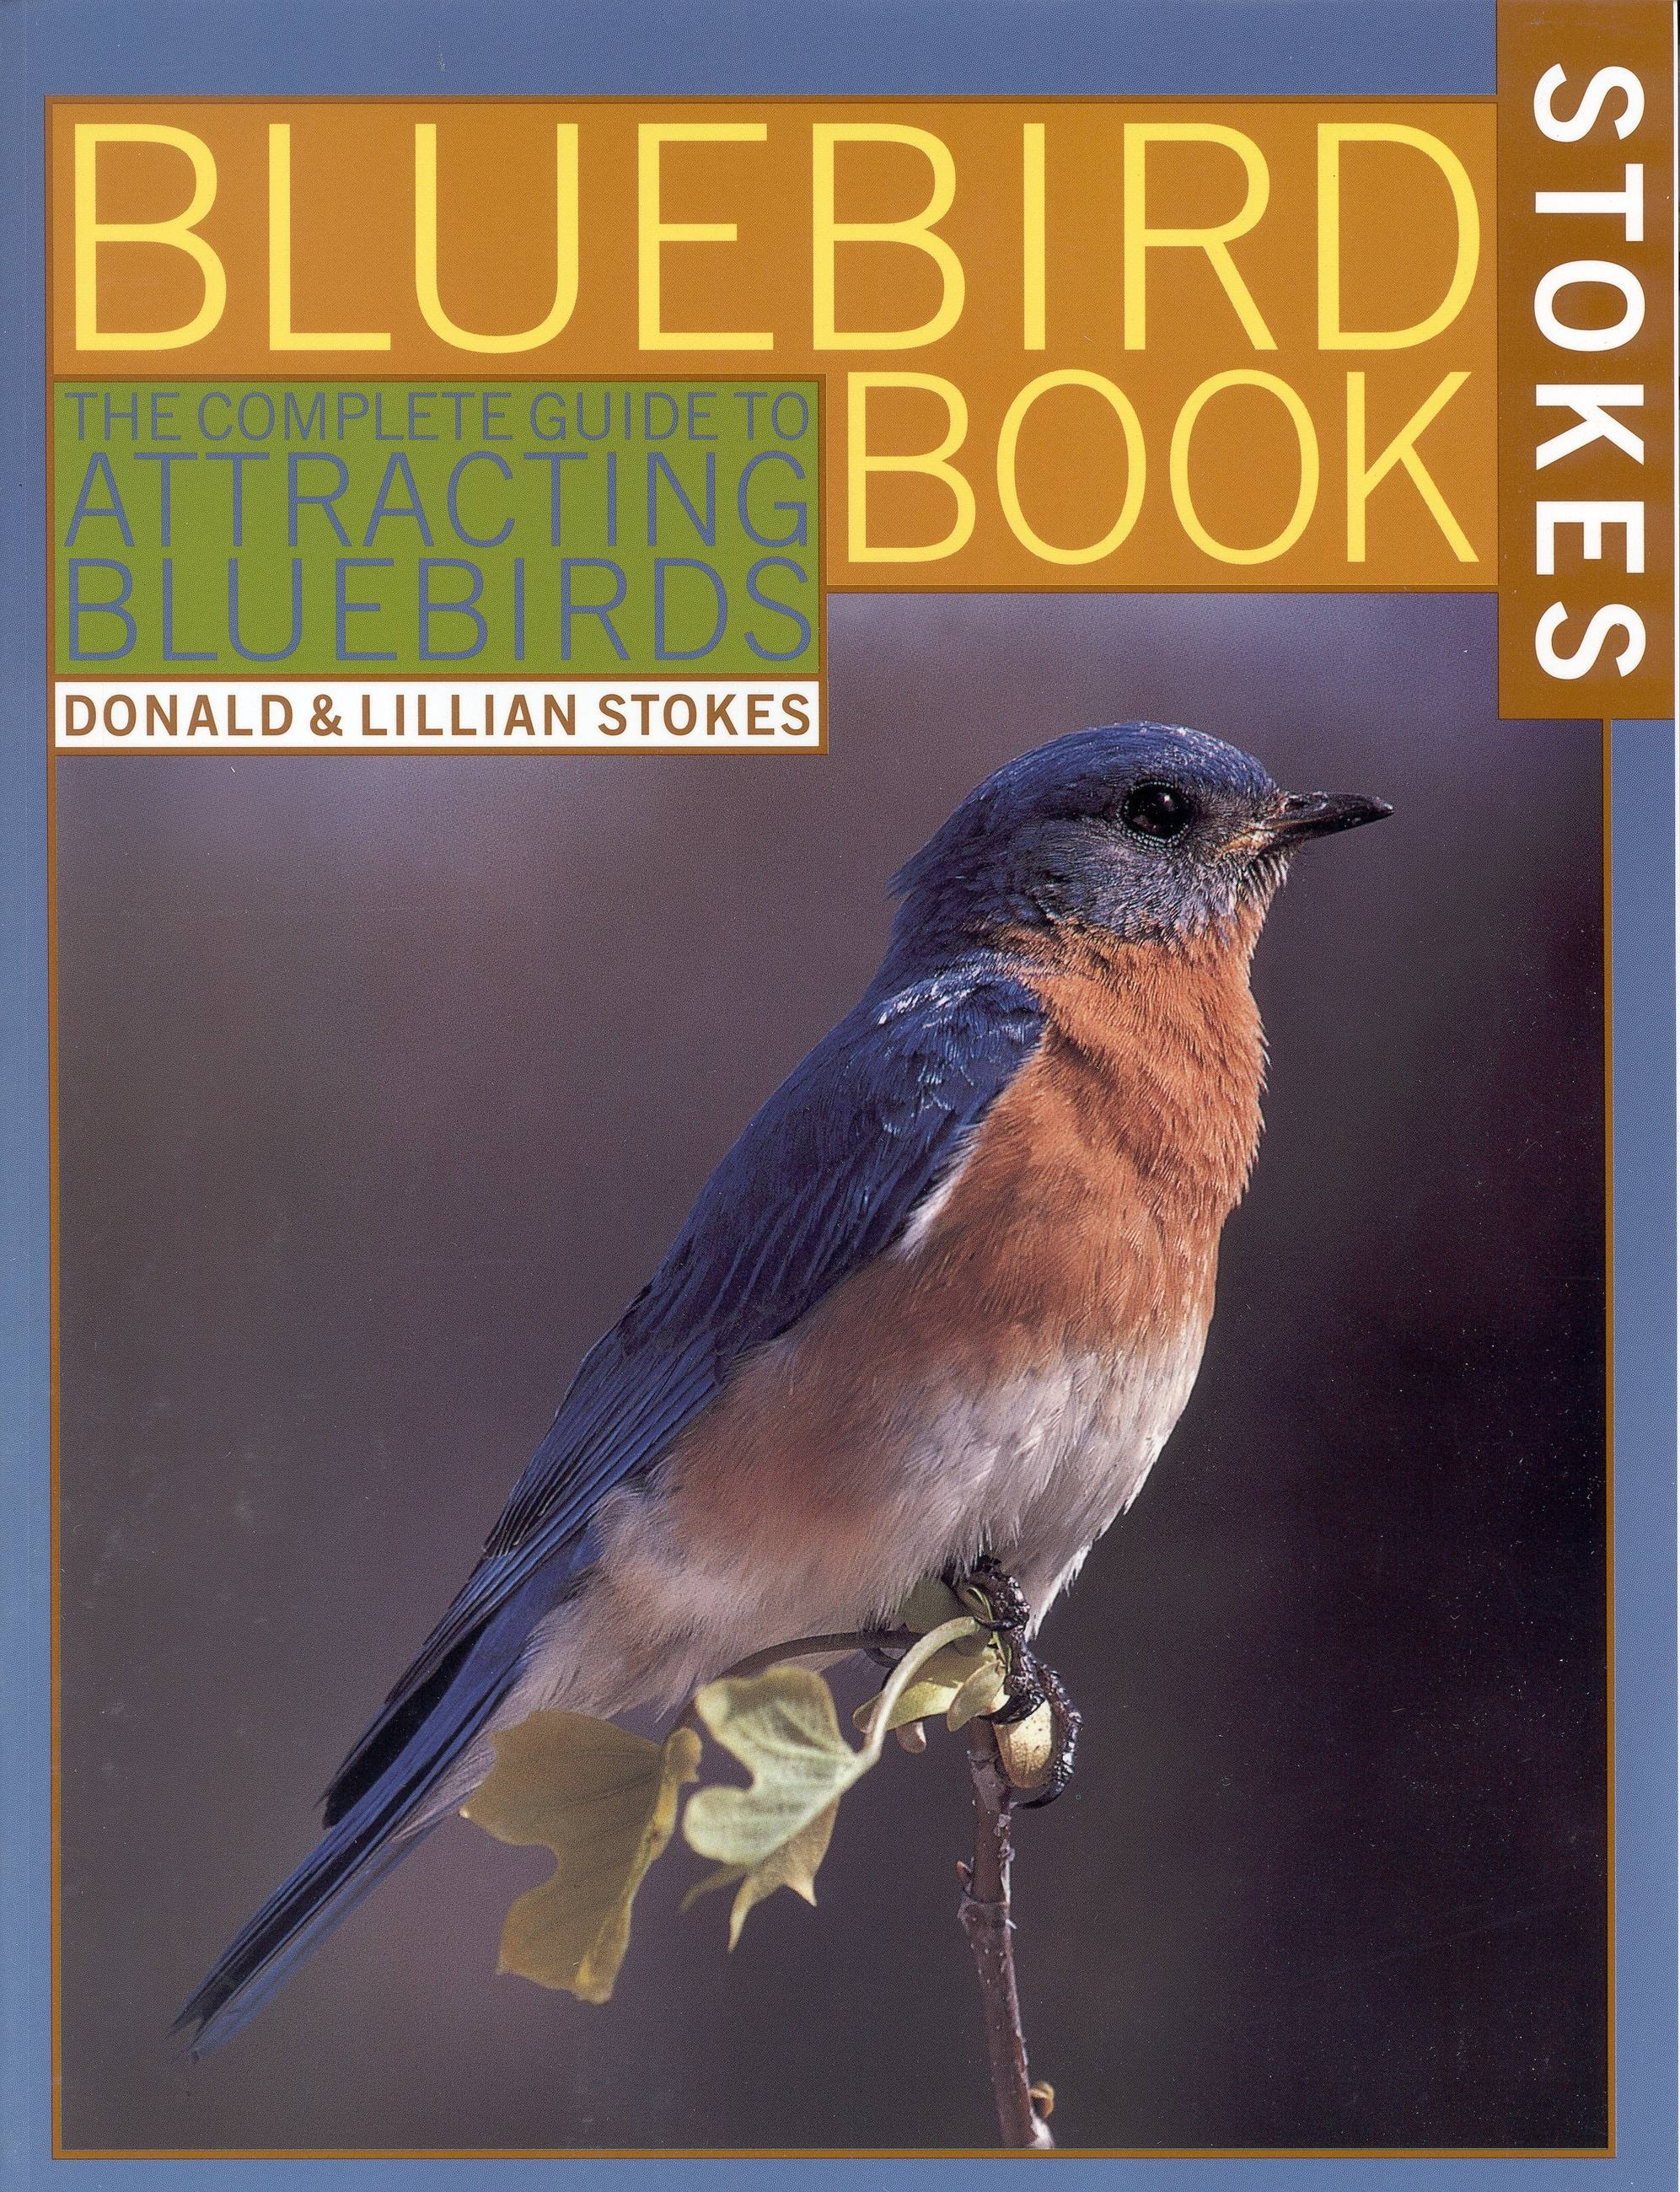 Bluebird Book, The